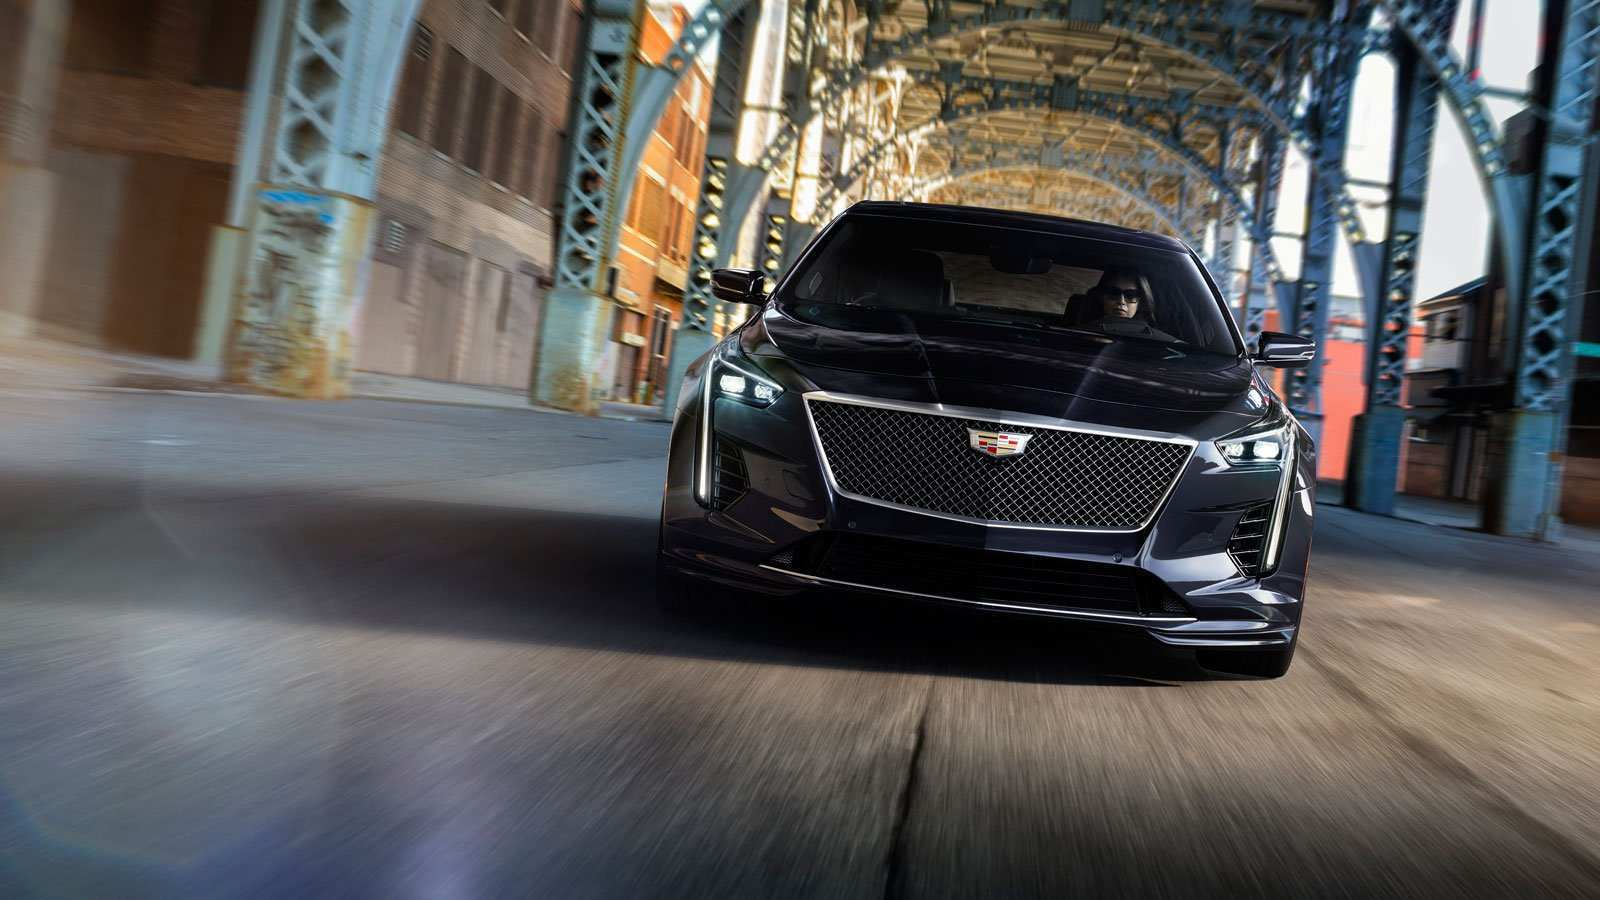 84 All New 2020 Cadillac Ct6 V First Drive